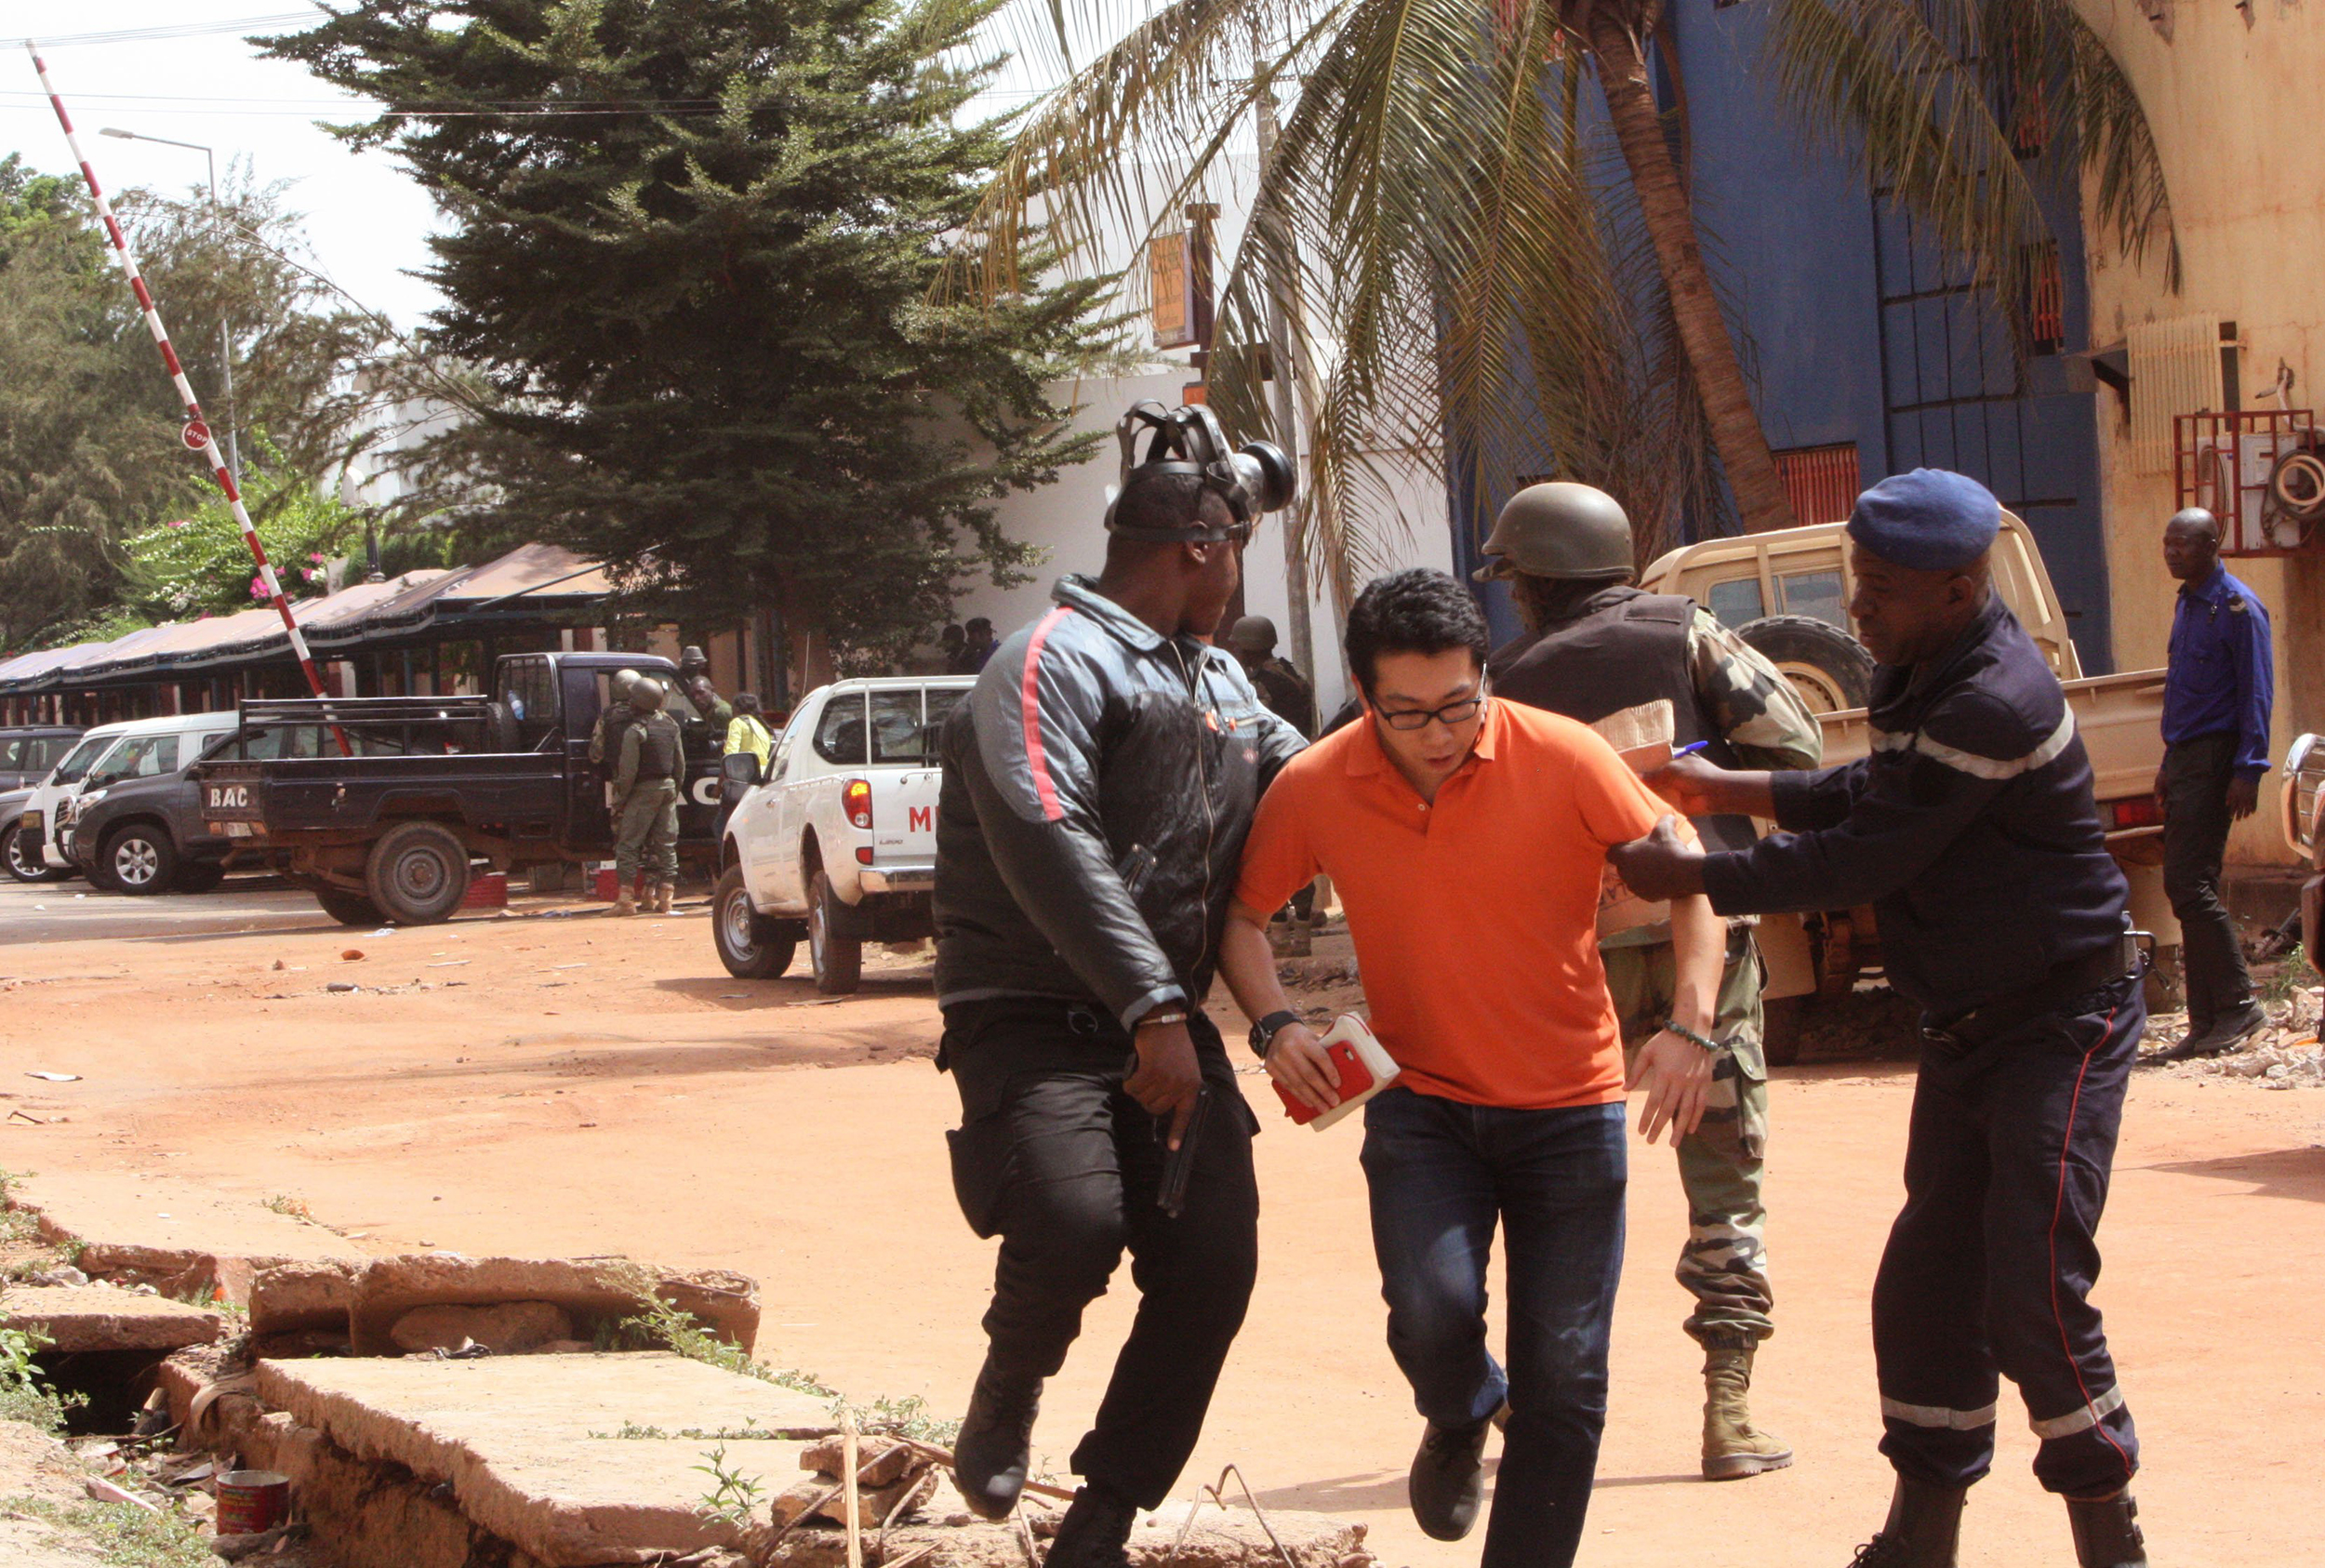 Mali trooper assist a hostage to leave the scene, from the Radisson Blu hotel to safety after gunmen attacked the hotel in Bamako, Mali on Nov. 20, 2015.